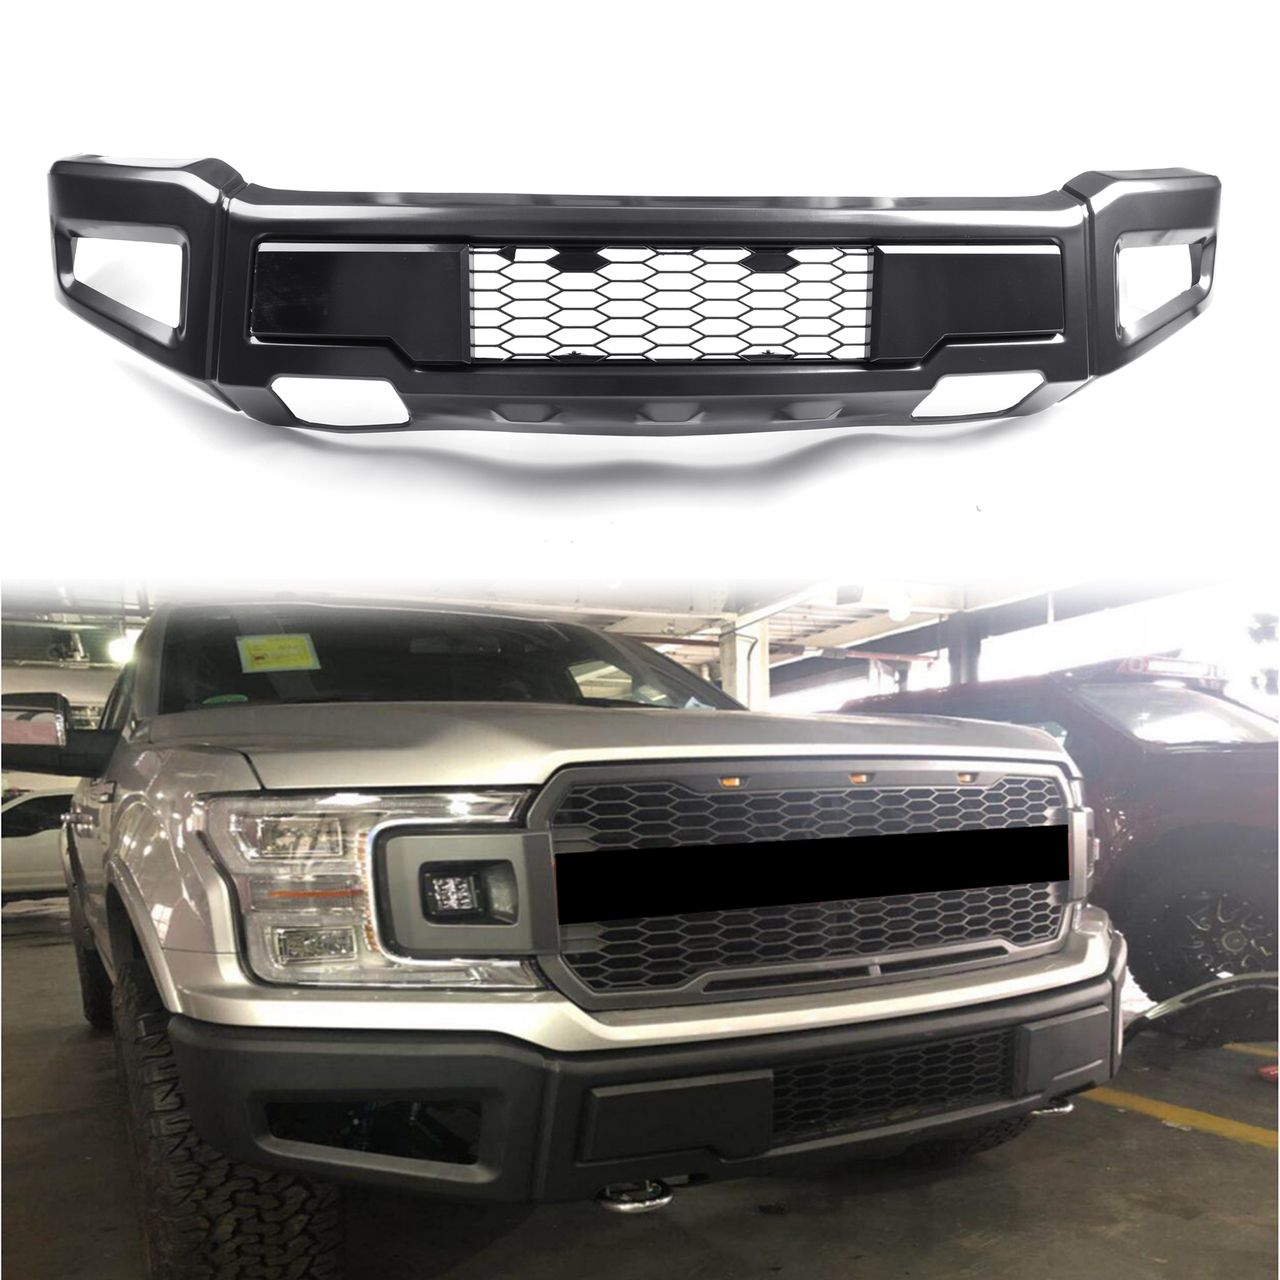 Raptor Style Front Bumper Assembly Kit For Ford F 150 2018 2019